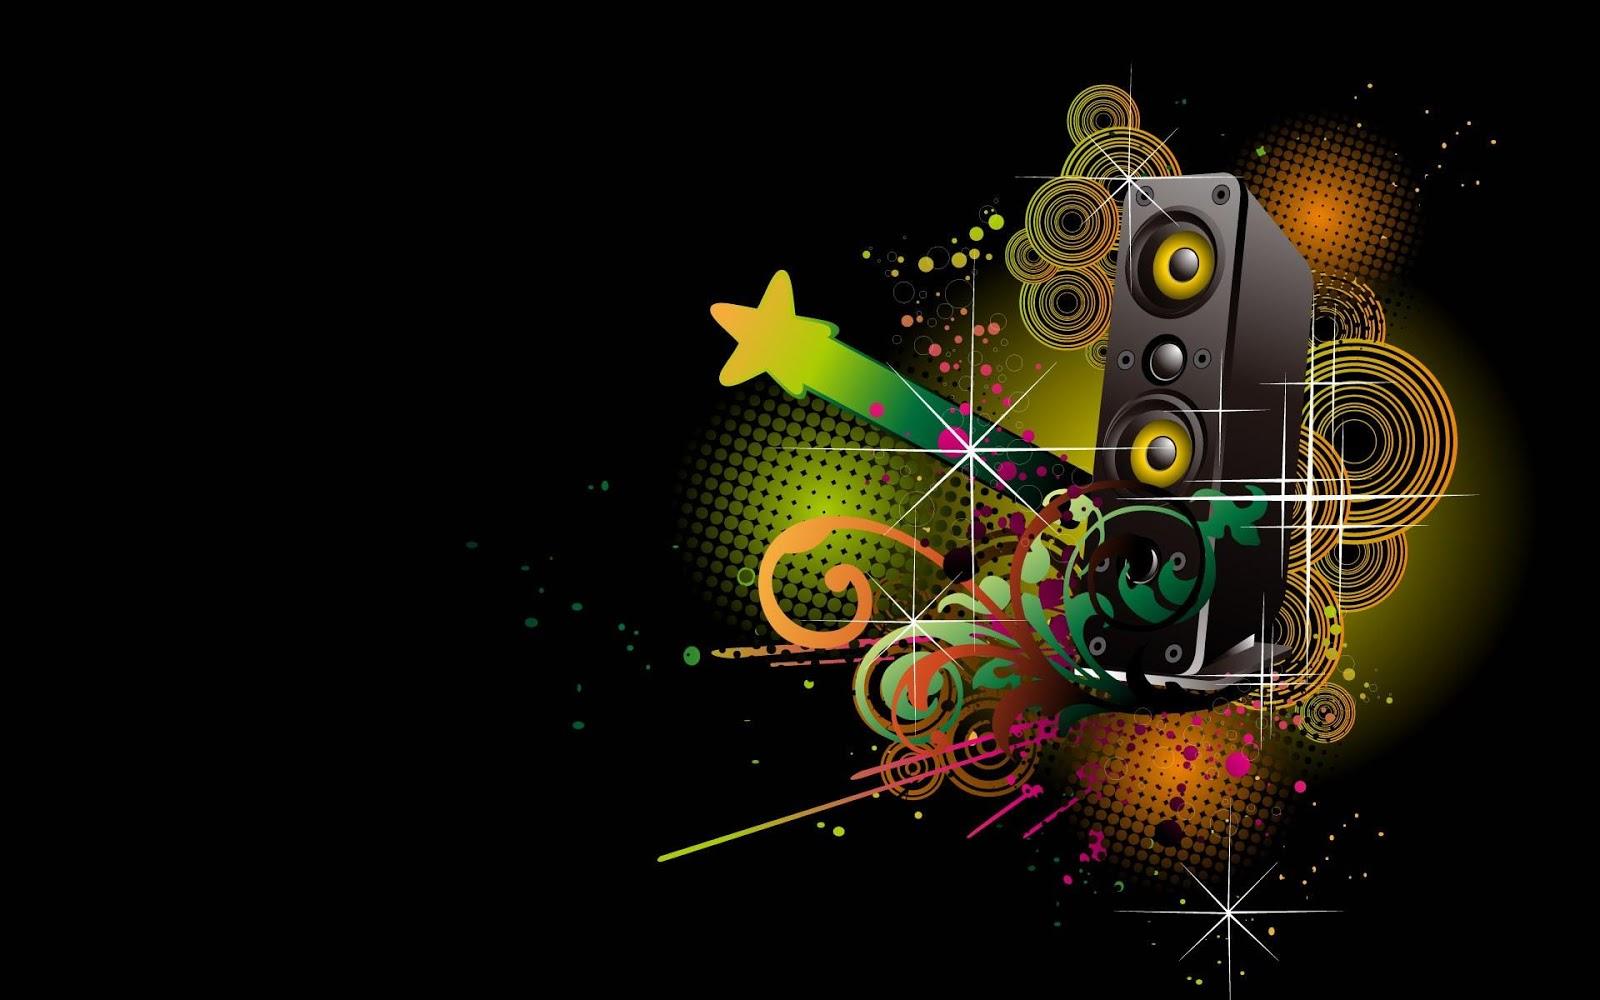 Cool music Background Wallpapers | HD Wallpapers Pics